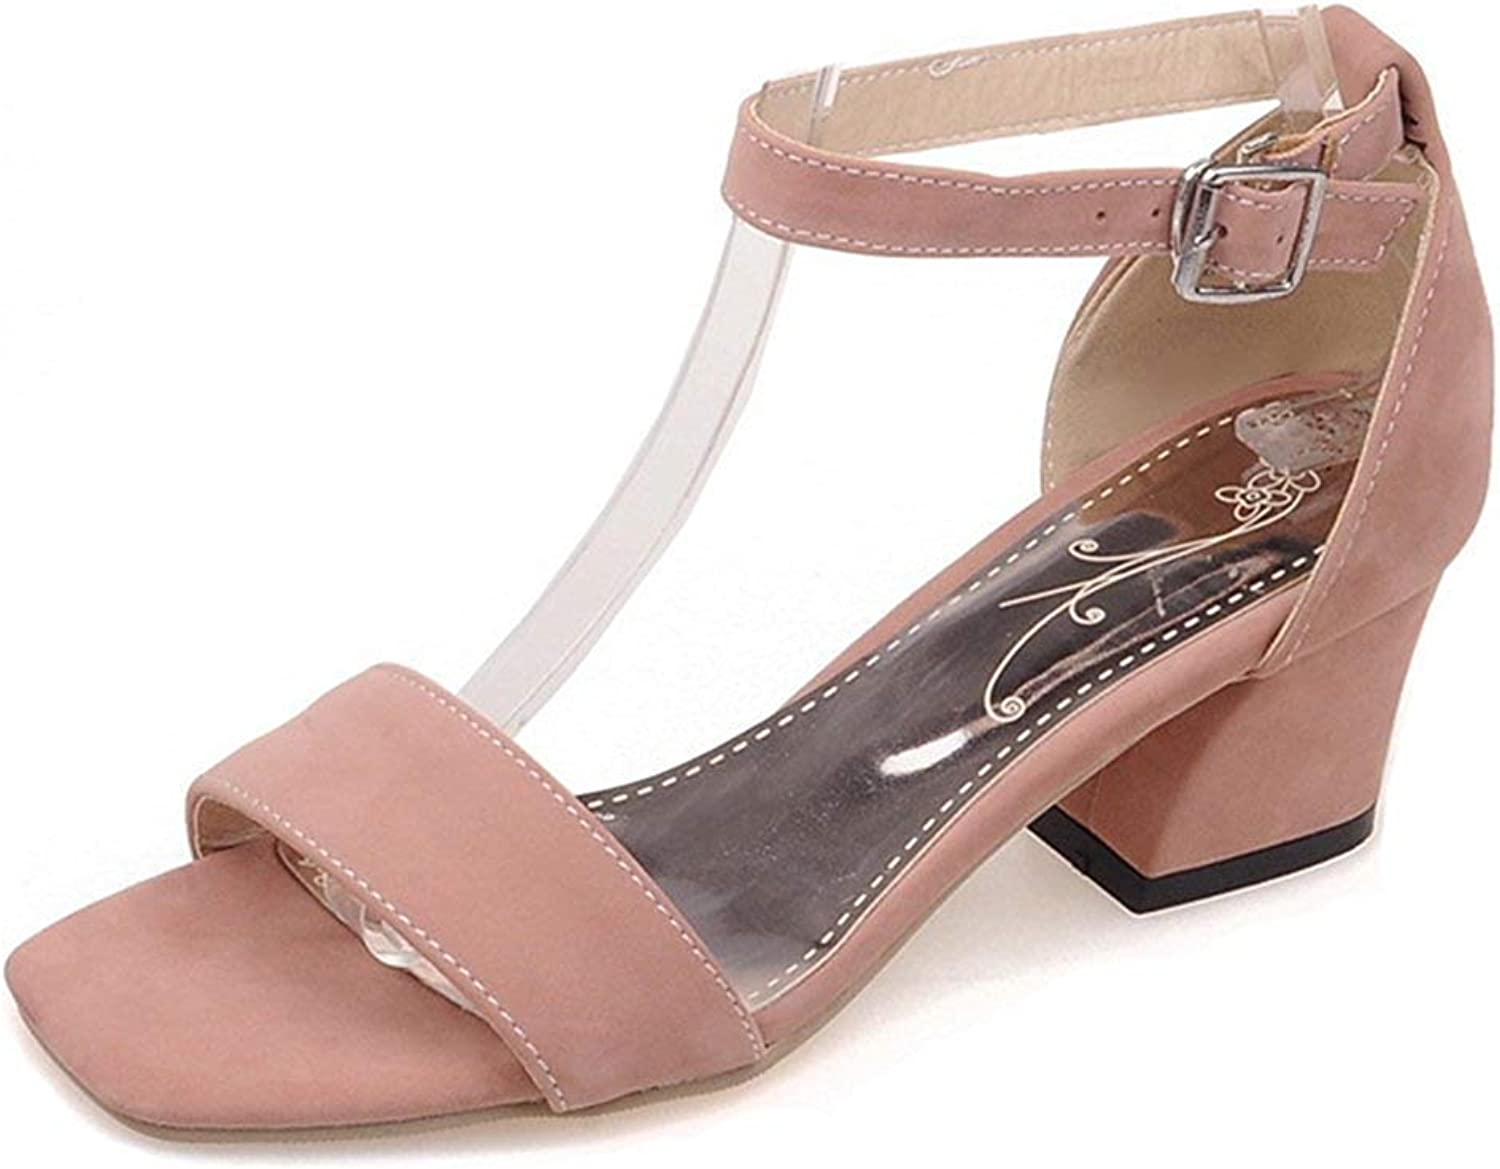 Unm Women's Mid Heel Sandals with Ankle Strap - Simple Chunky Buckled - Open Toe Party Wedding